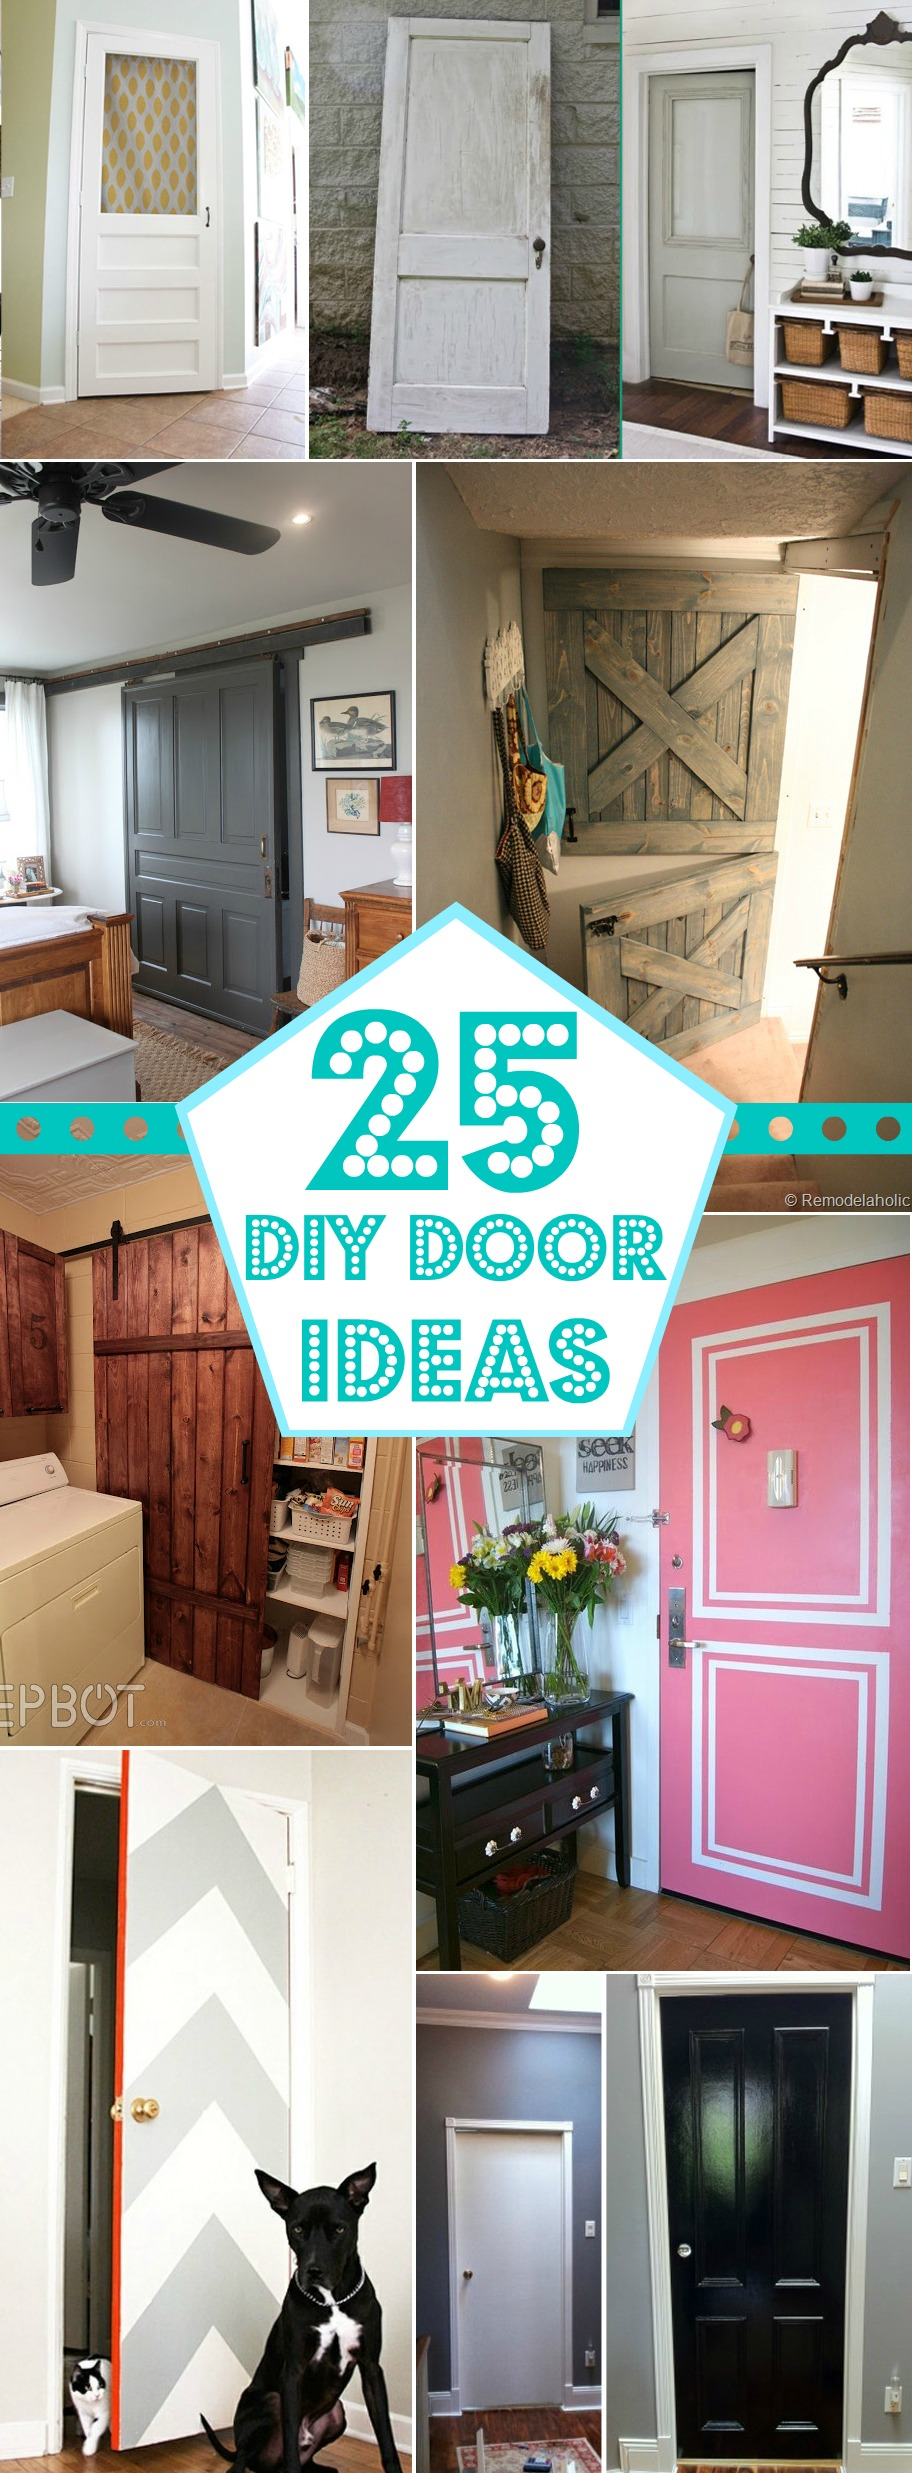 25+ Great DIY Door Ideas | @Remodelaholic #doors #DIY #decorating